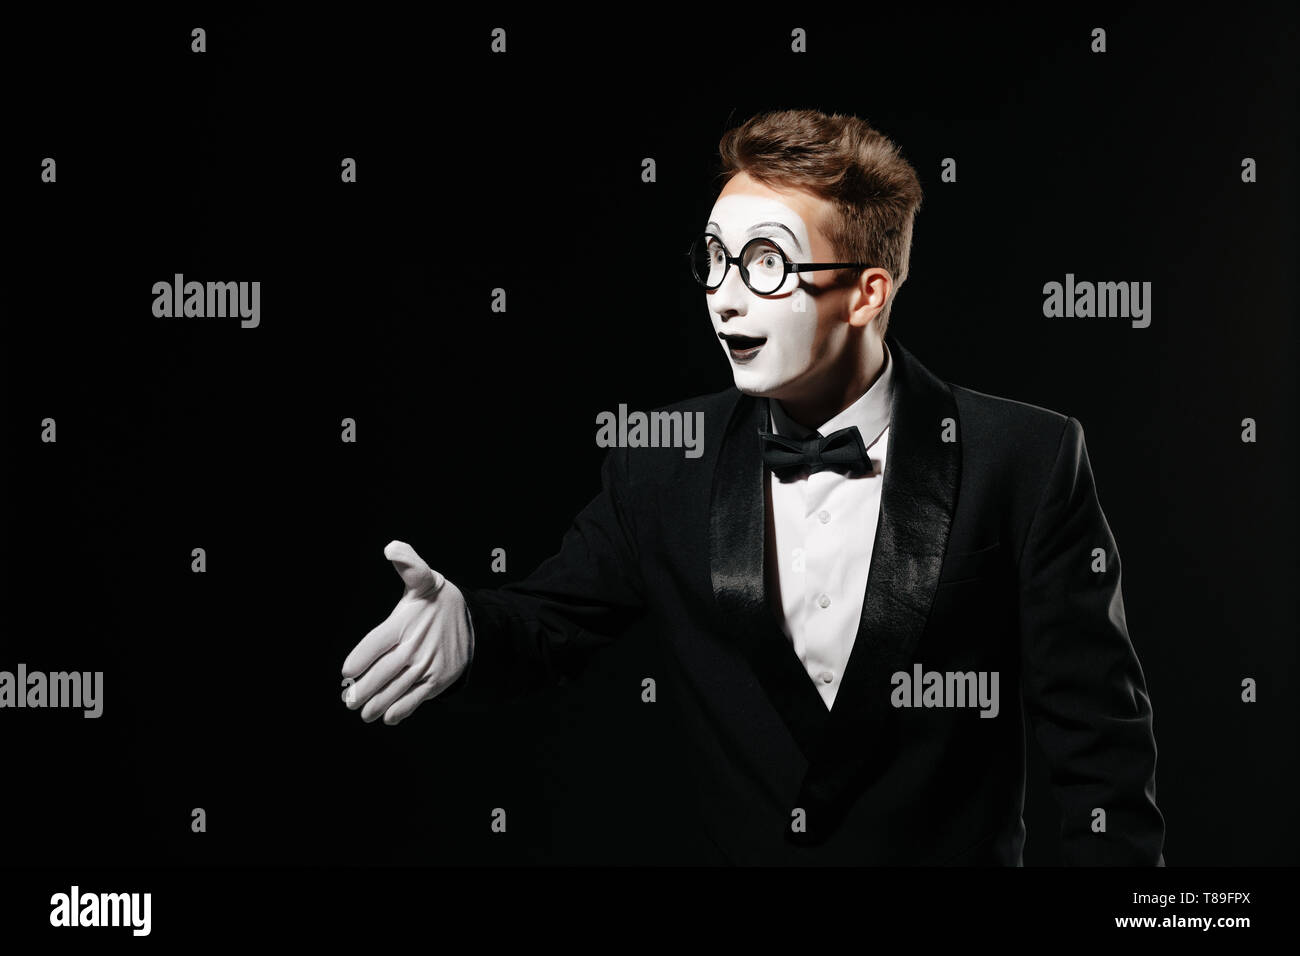 portrait of mime man in tuxedo and glasses giving hand for handshake on black background - Stock Image